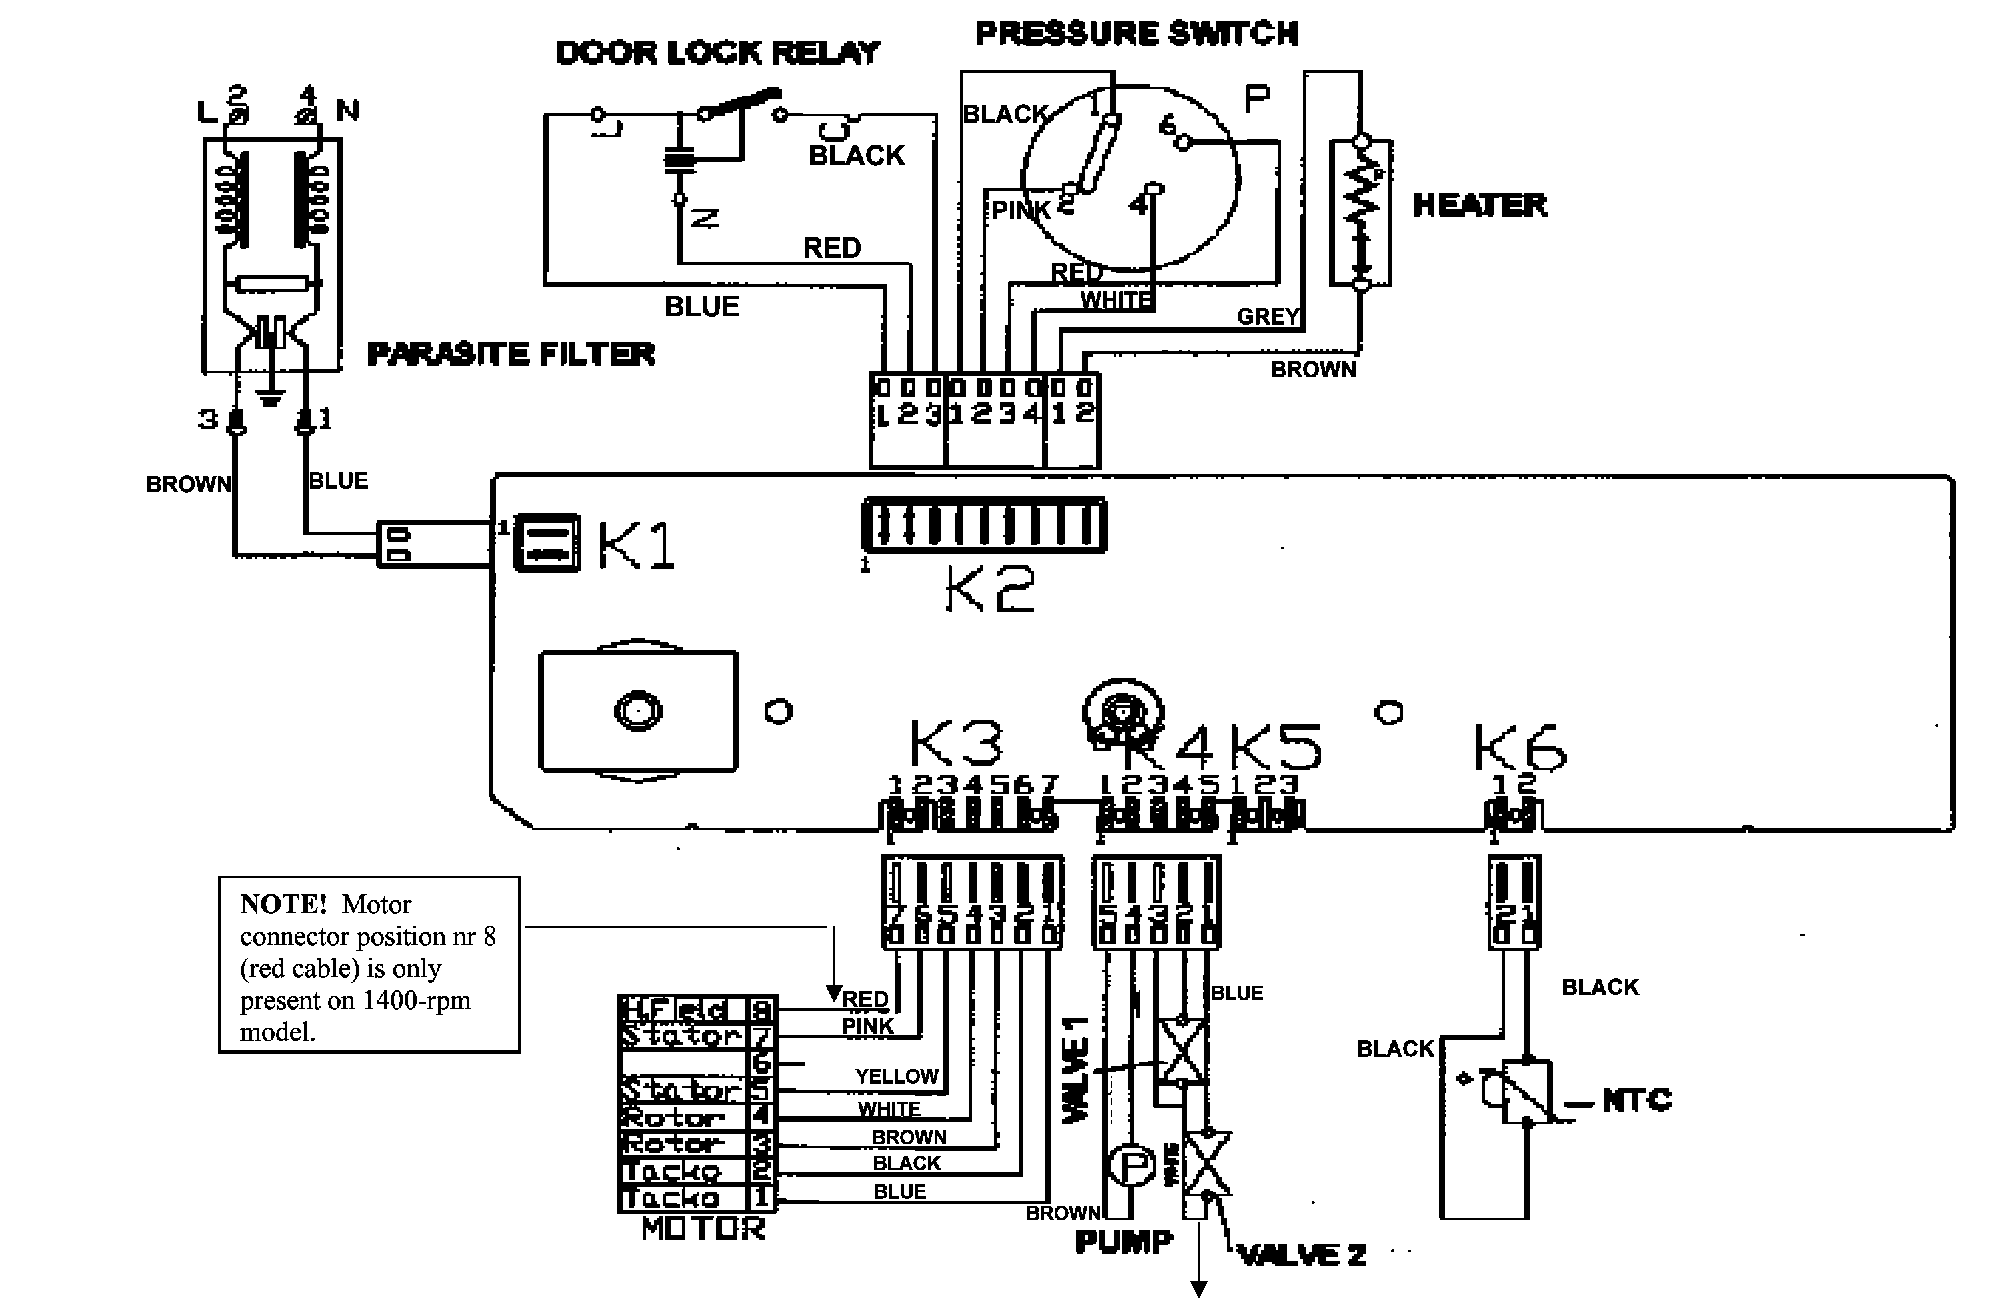 Matsui Mwm1400n Washing Machine Parts Partmaster Door Interlock Wiring Diagram